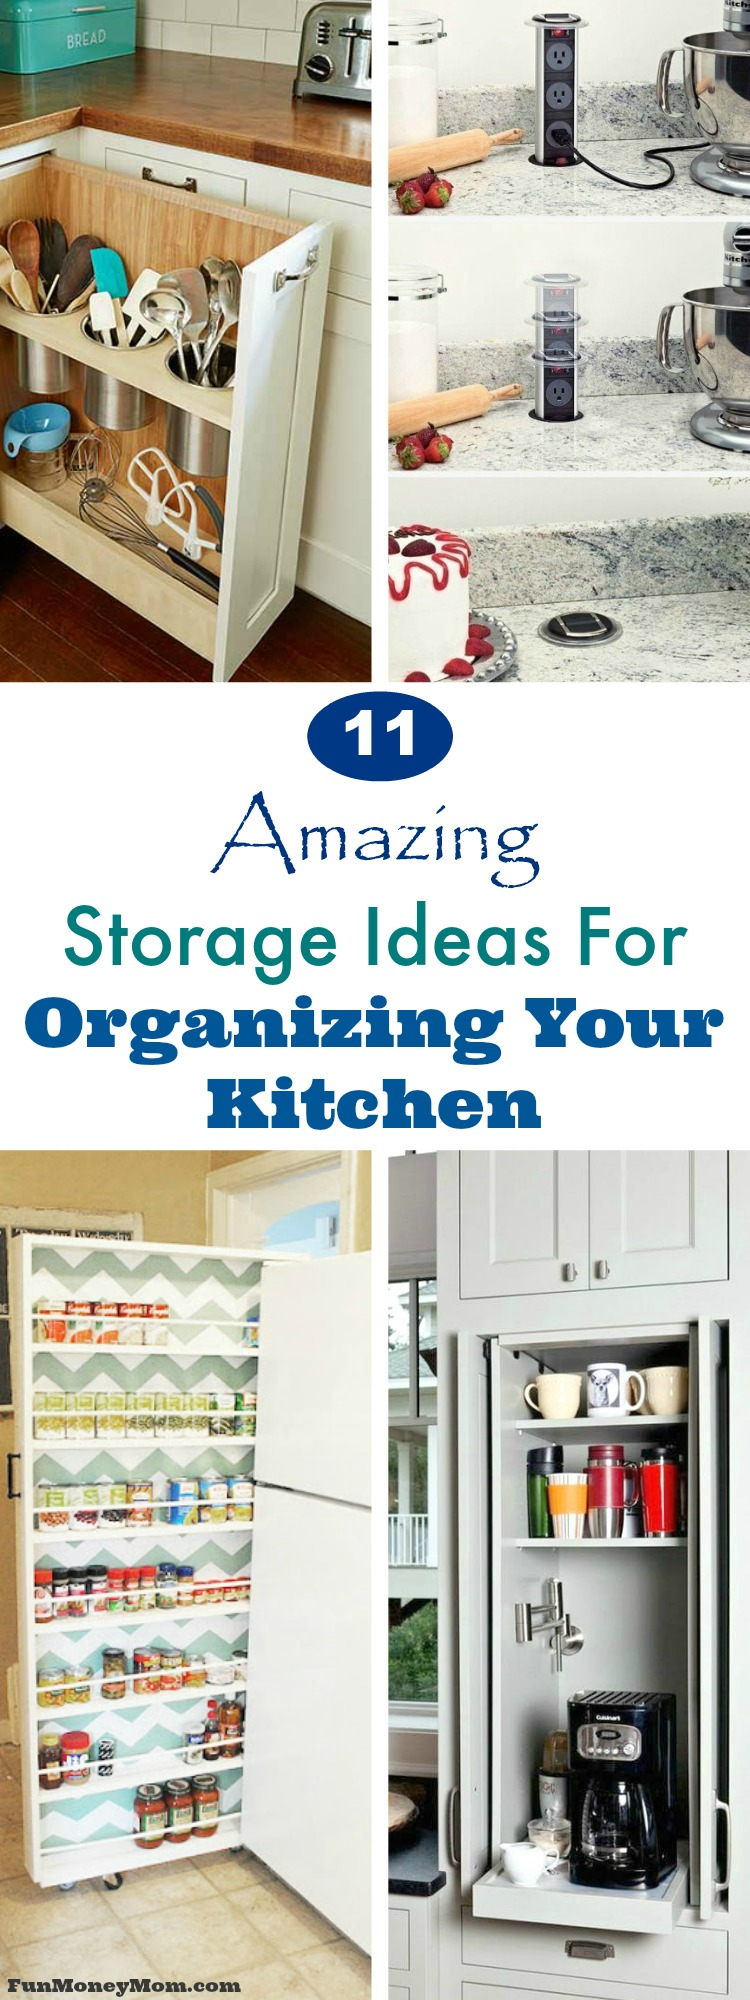 Planning a kitchen remodel? Don't start those renovations until you see these amazing kitchen organization ideas!